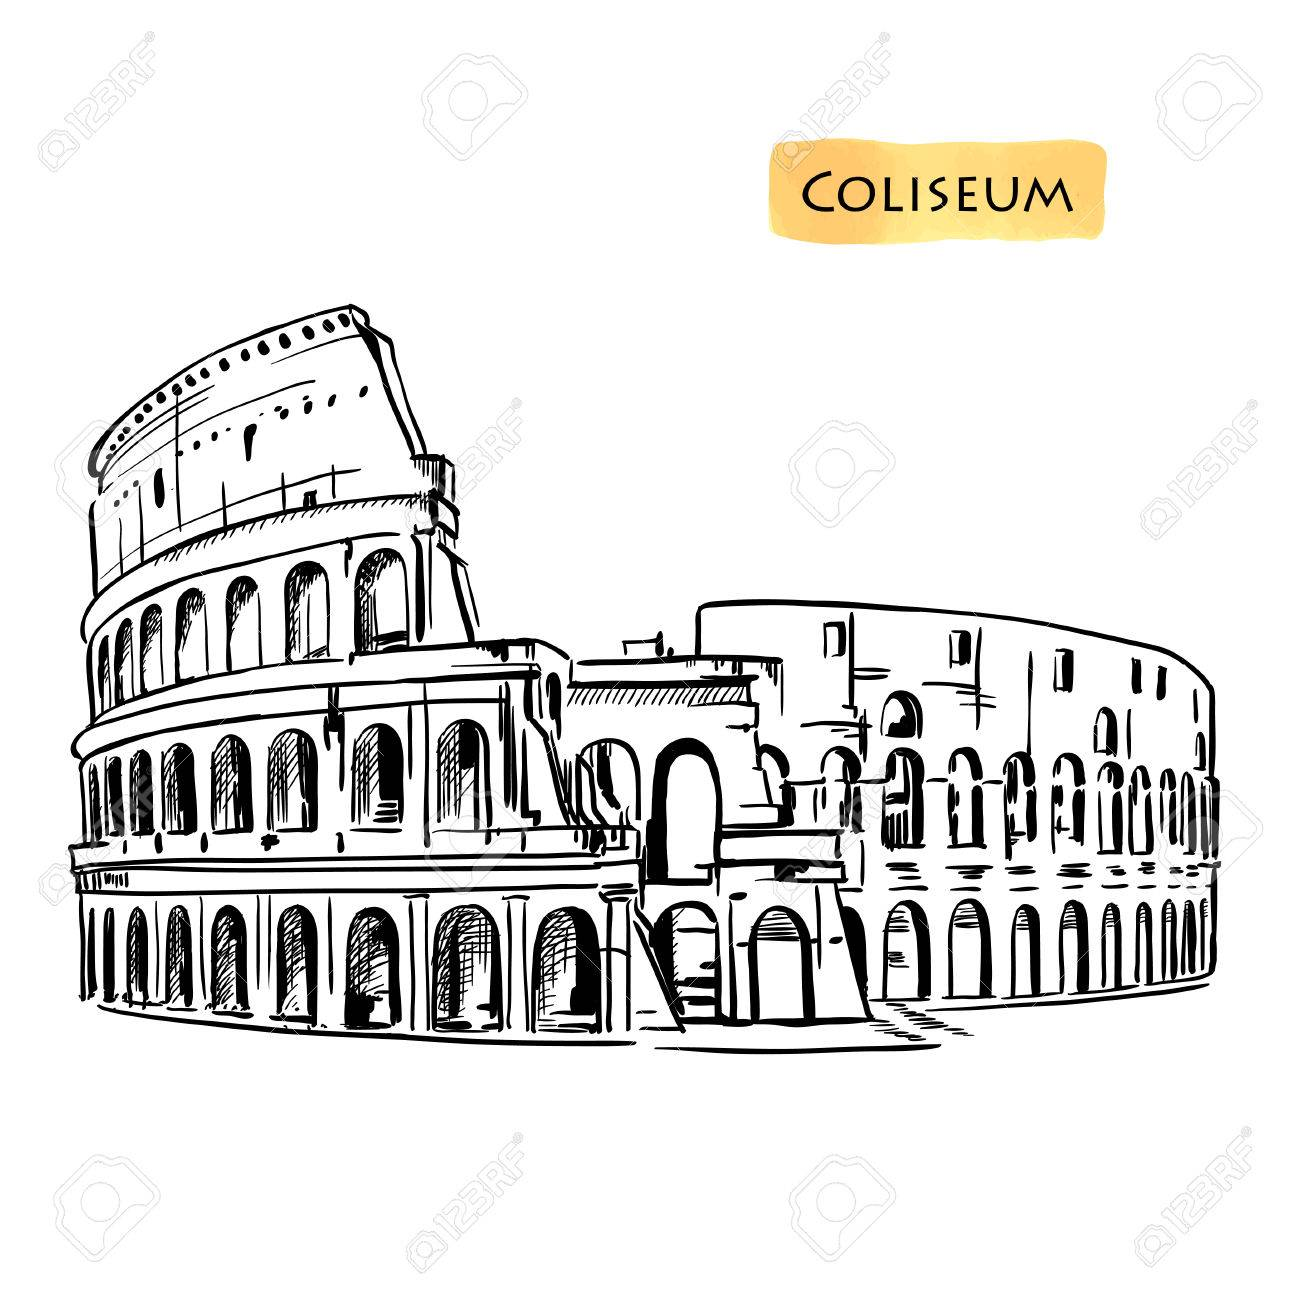 Colosseum hand drawn vector illustration isolated over white background sketch - 50774133